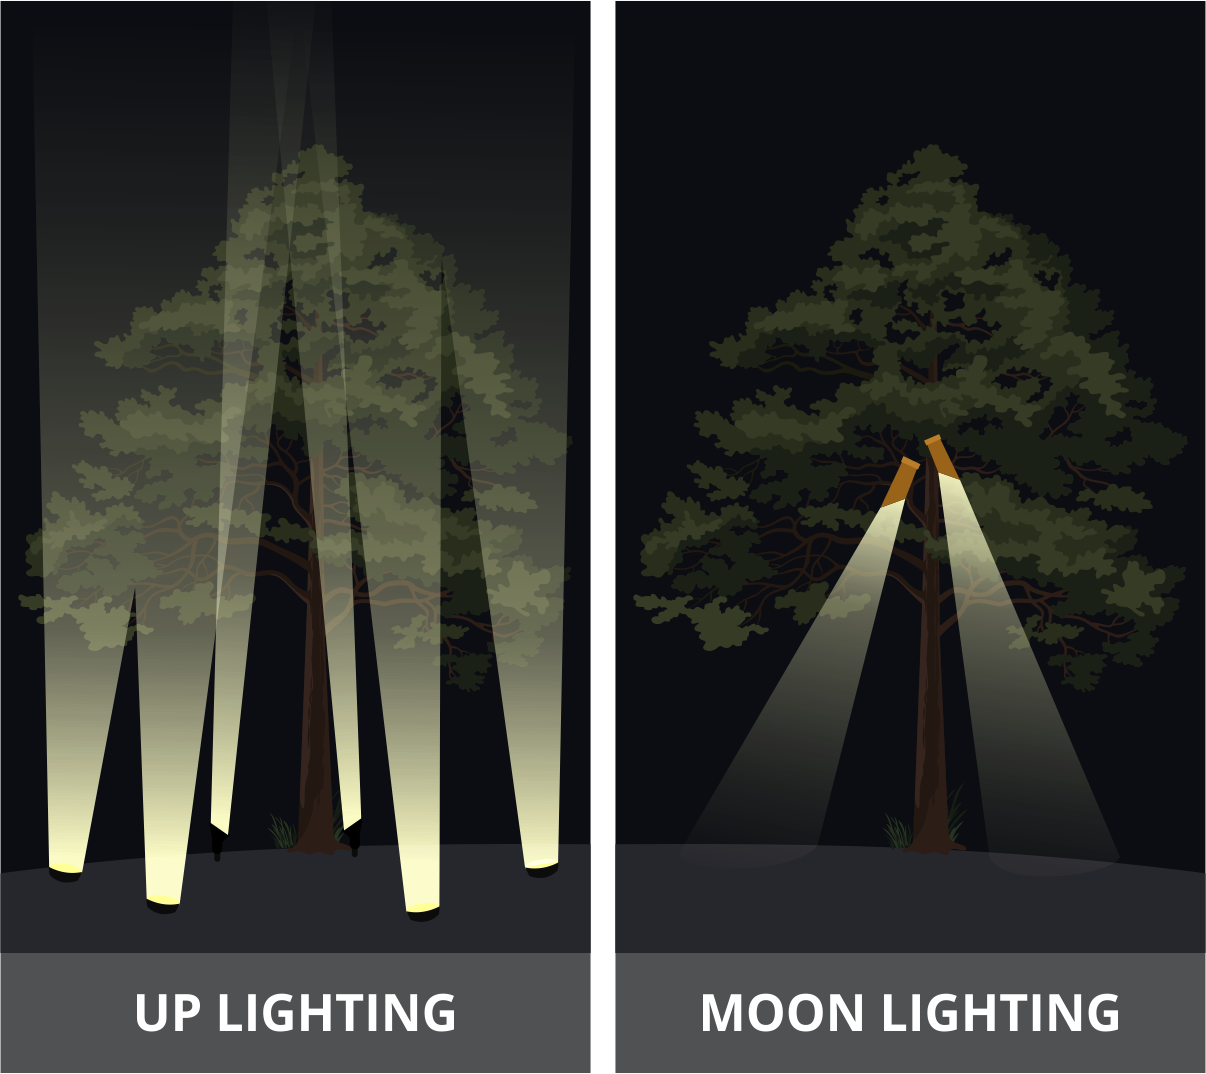 Illustration showing differences in up lighting and moon lighting